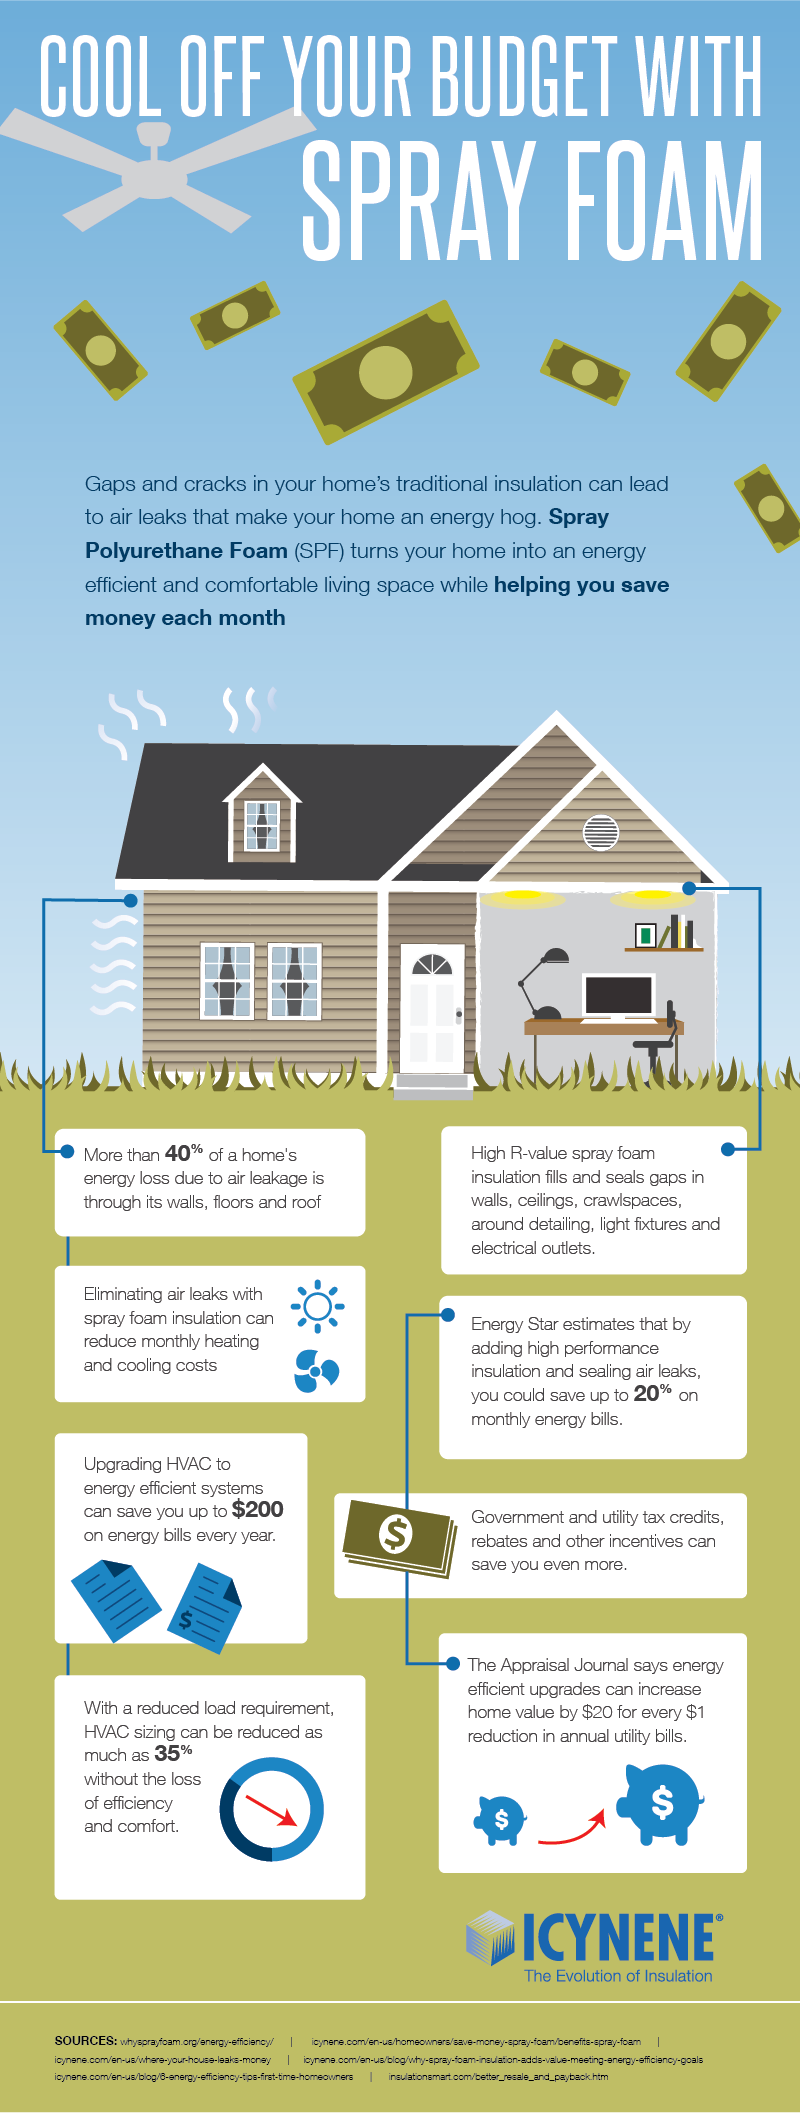 Cool off your air conditioning budget